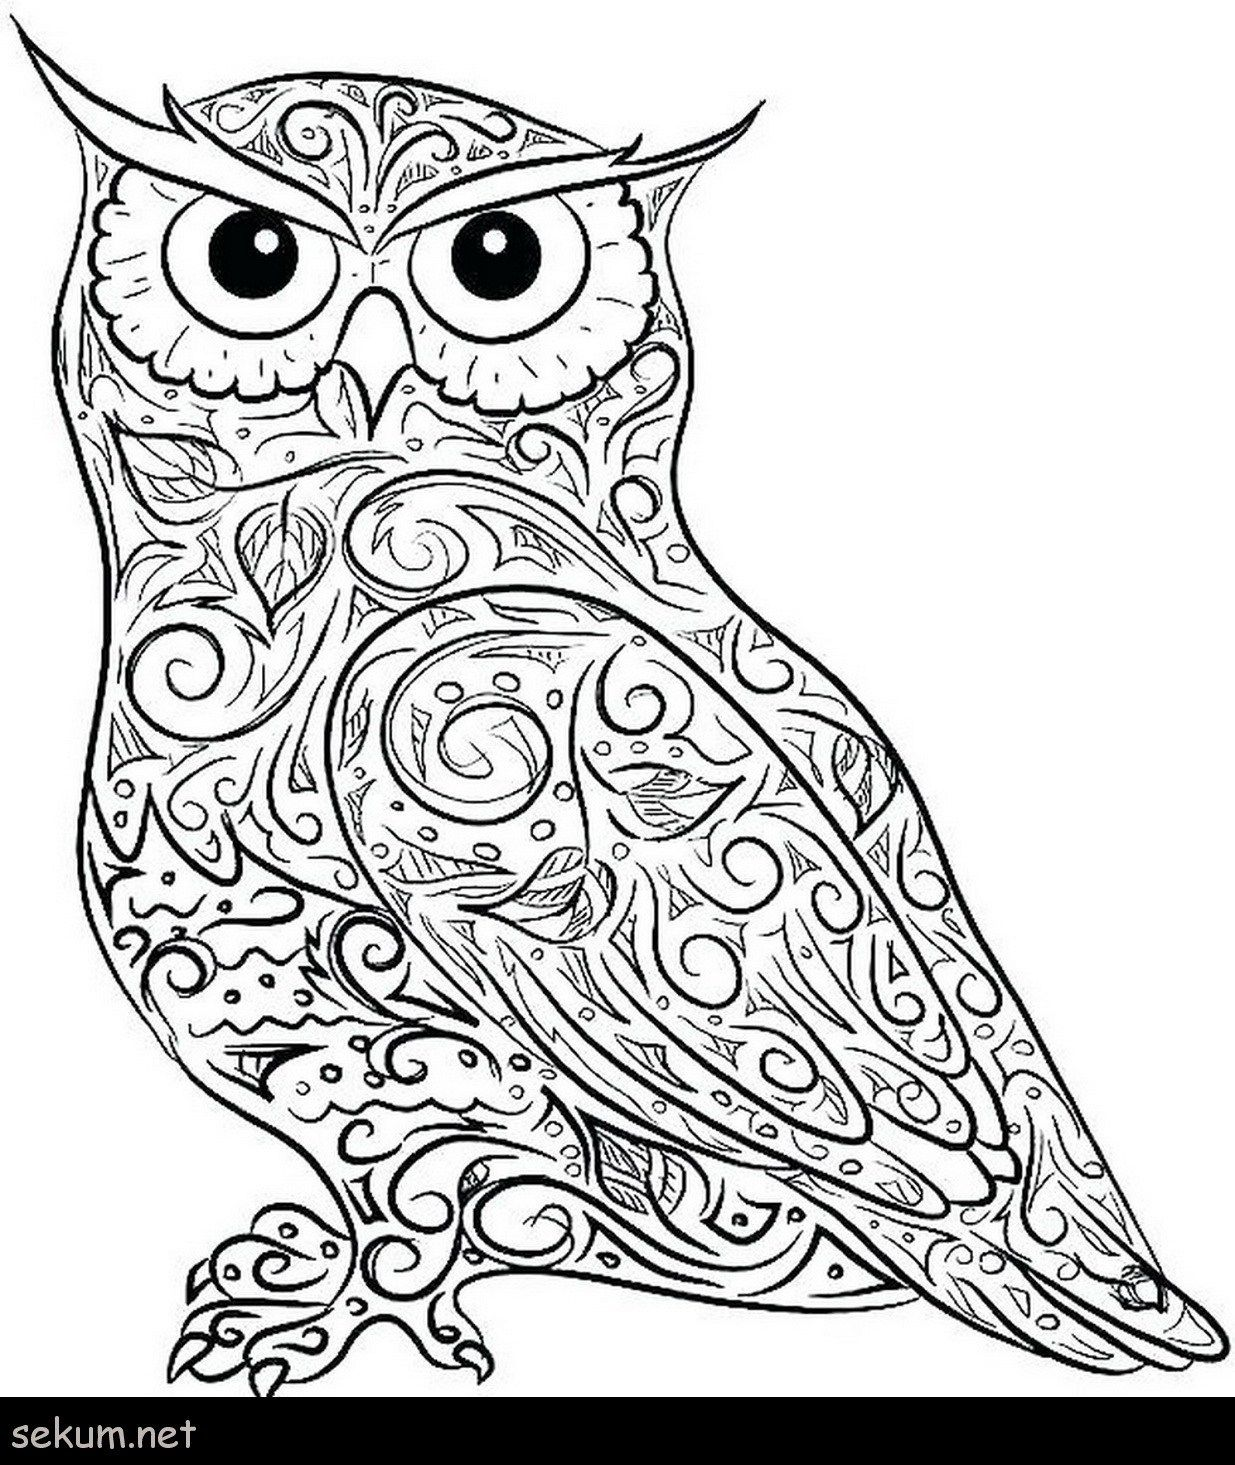 24 Best Photo Of Owl Coloring Pages For Adults Davemelillo Com In 2020 Owl Coloring Pages Bird Coloring Pages Animal Coloring Pages